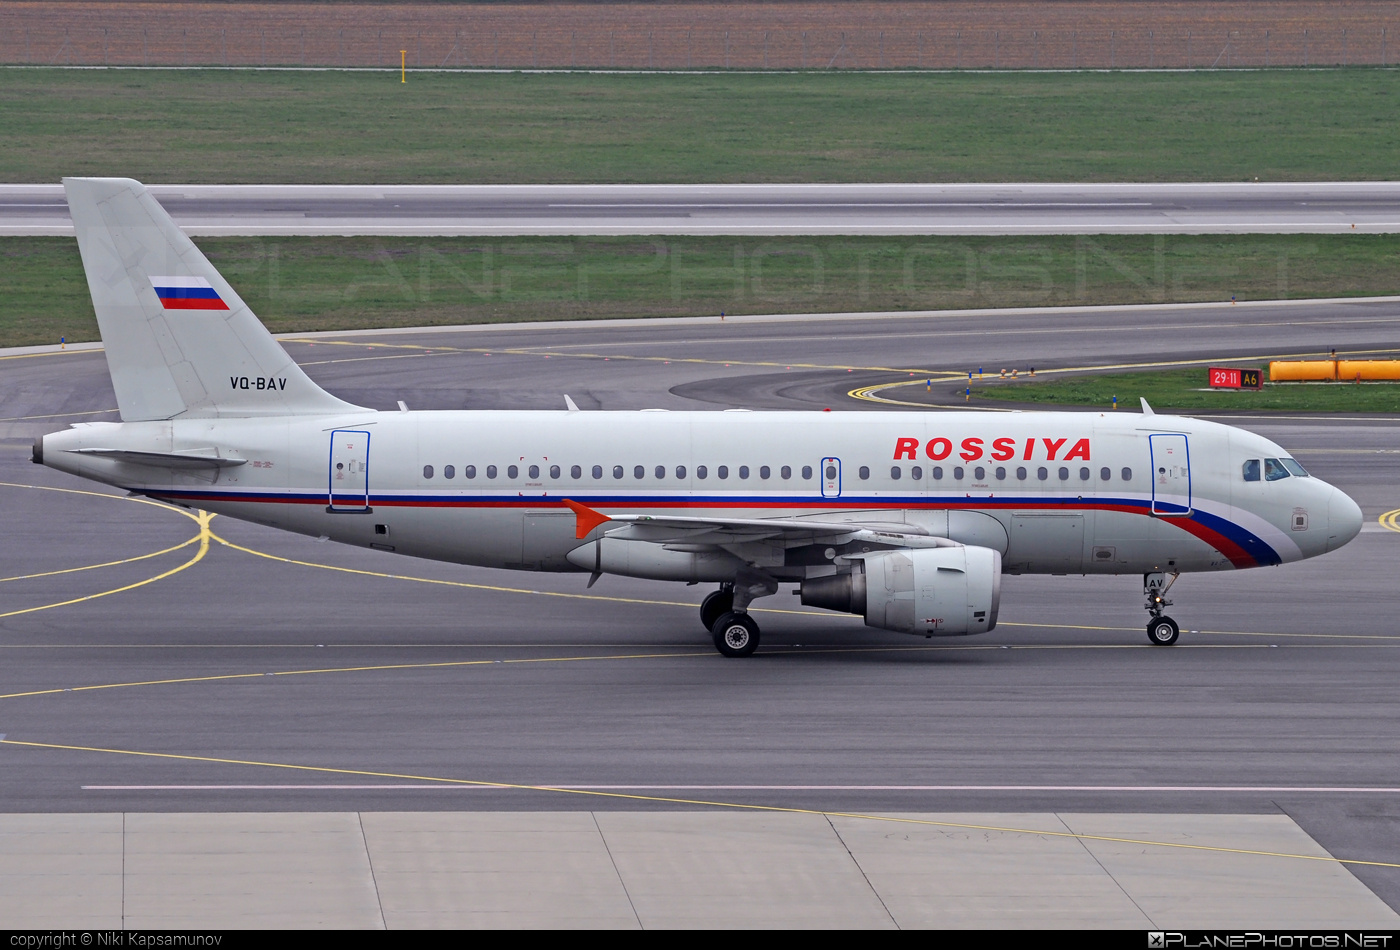 Airbus A319-111 - VQ-BAV operated by Rossiya Airlines #a319 #a320family #airbus #airbus319